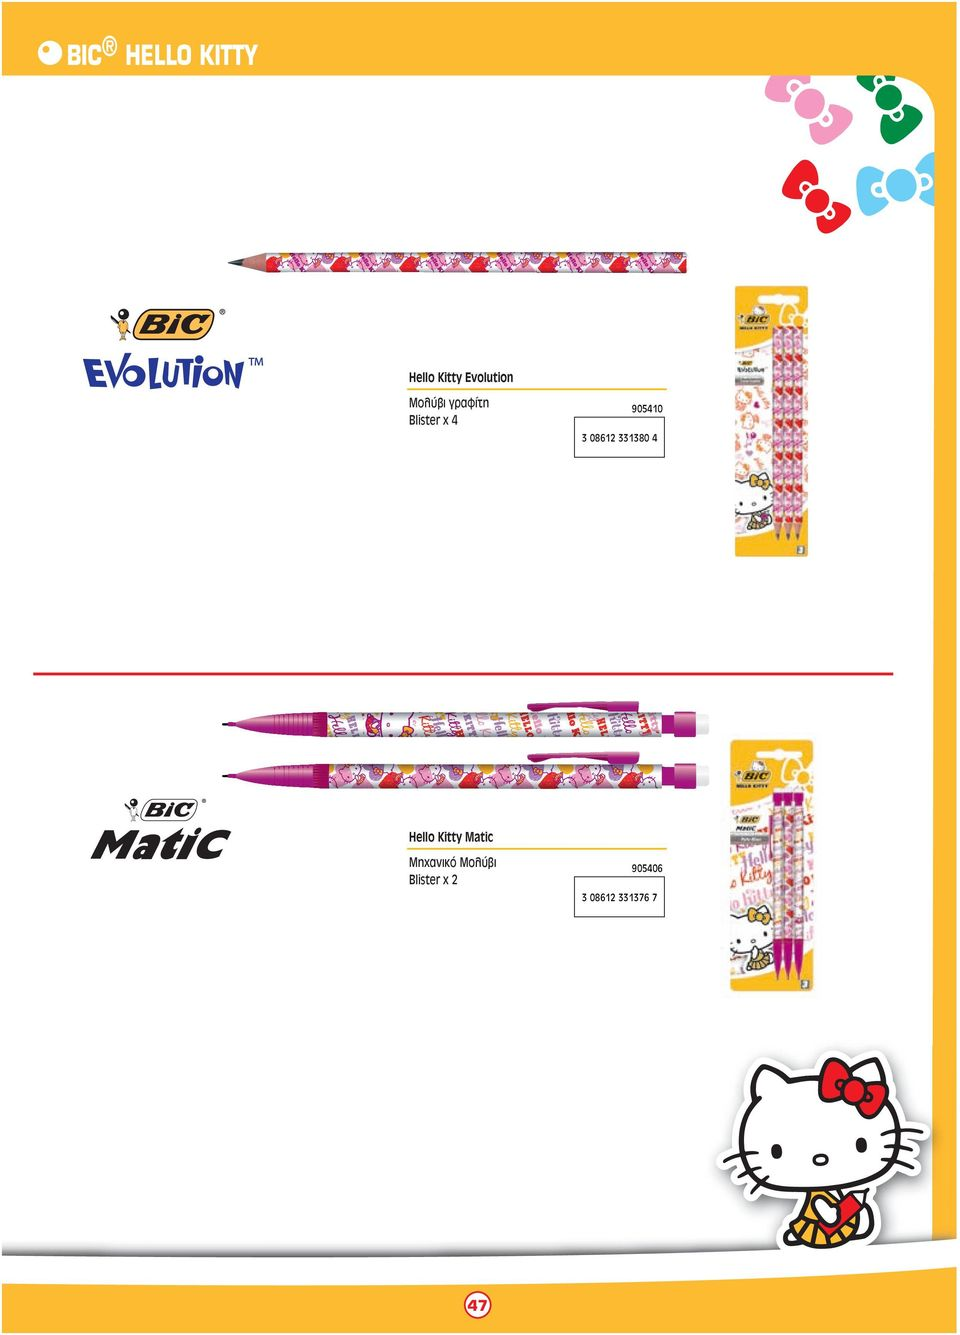 08612 331380 4 Hello Kitty Matic